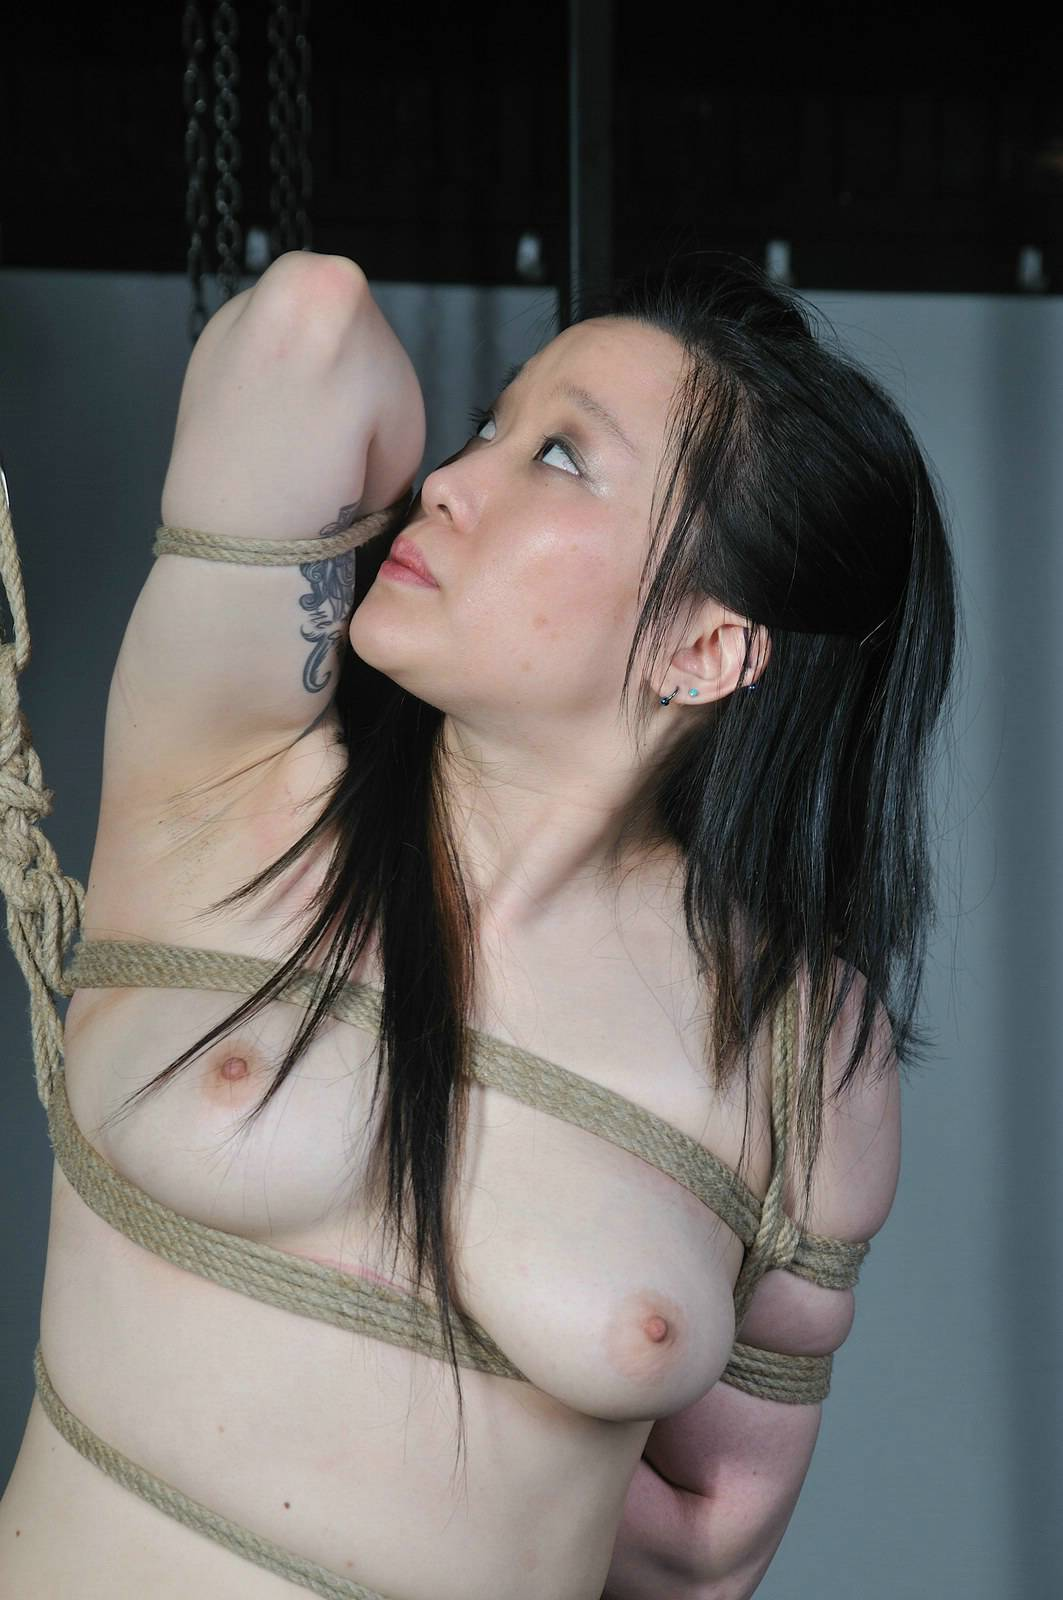 bondage japan video ehefrau bestrafen